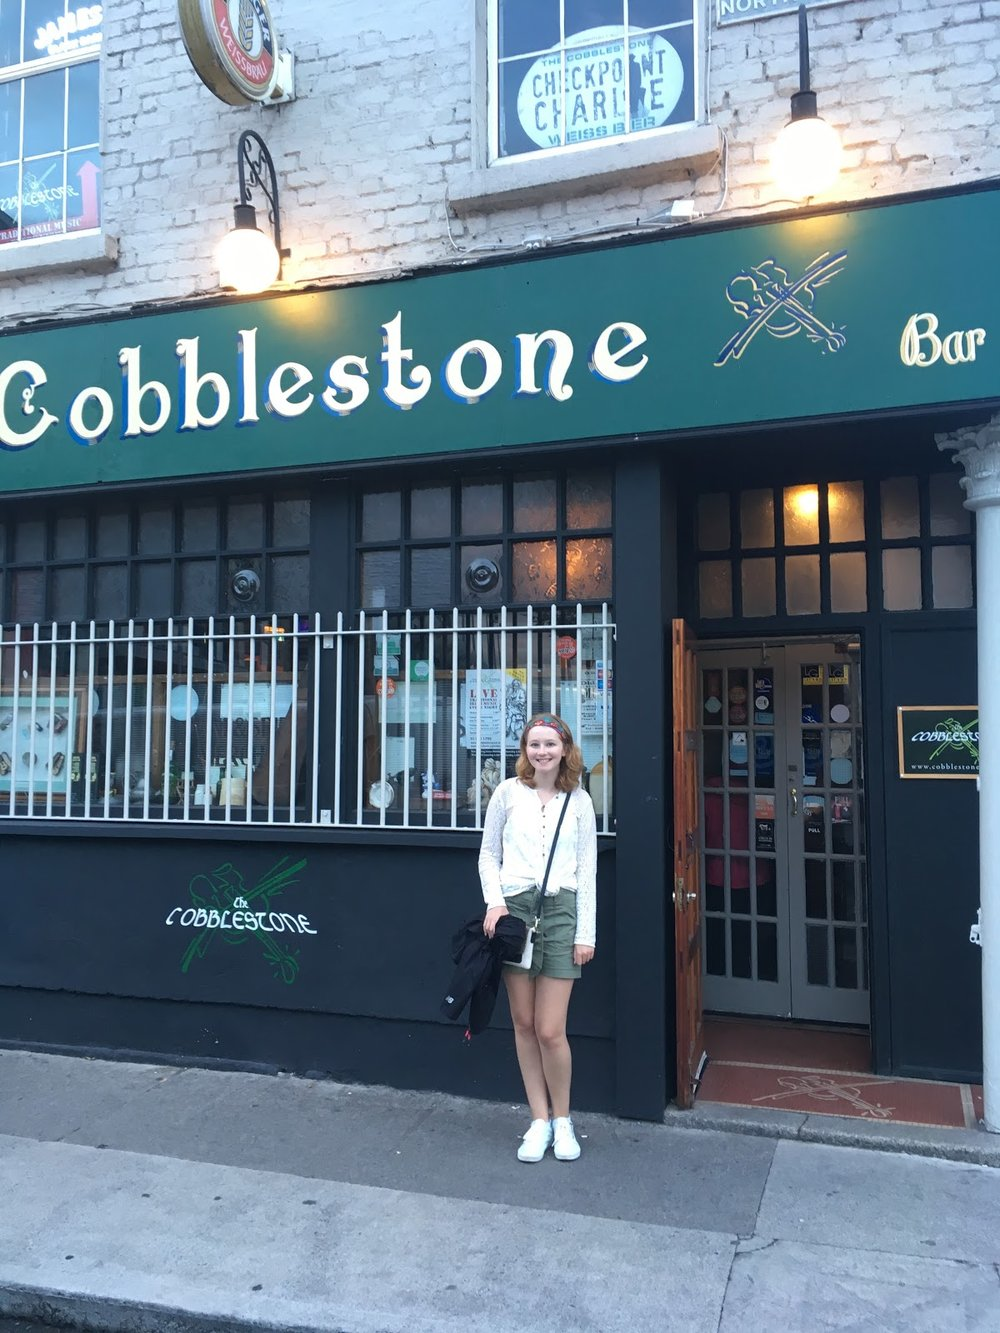 Located in one of Dublin's oldest neighborhoods, the charming Cobblestone Pub has live music every night.